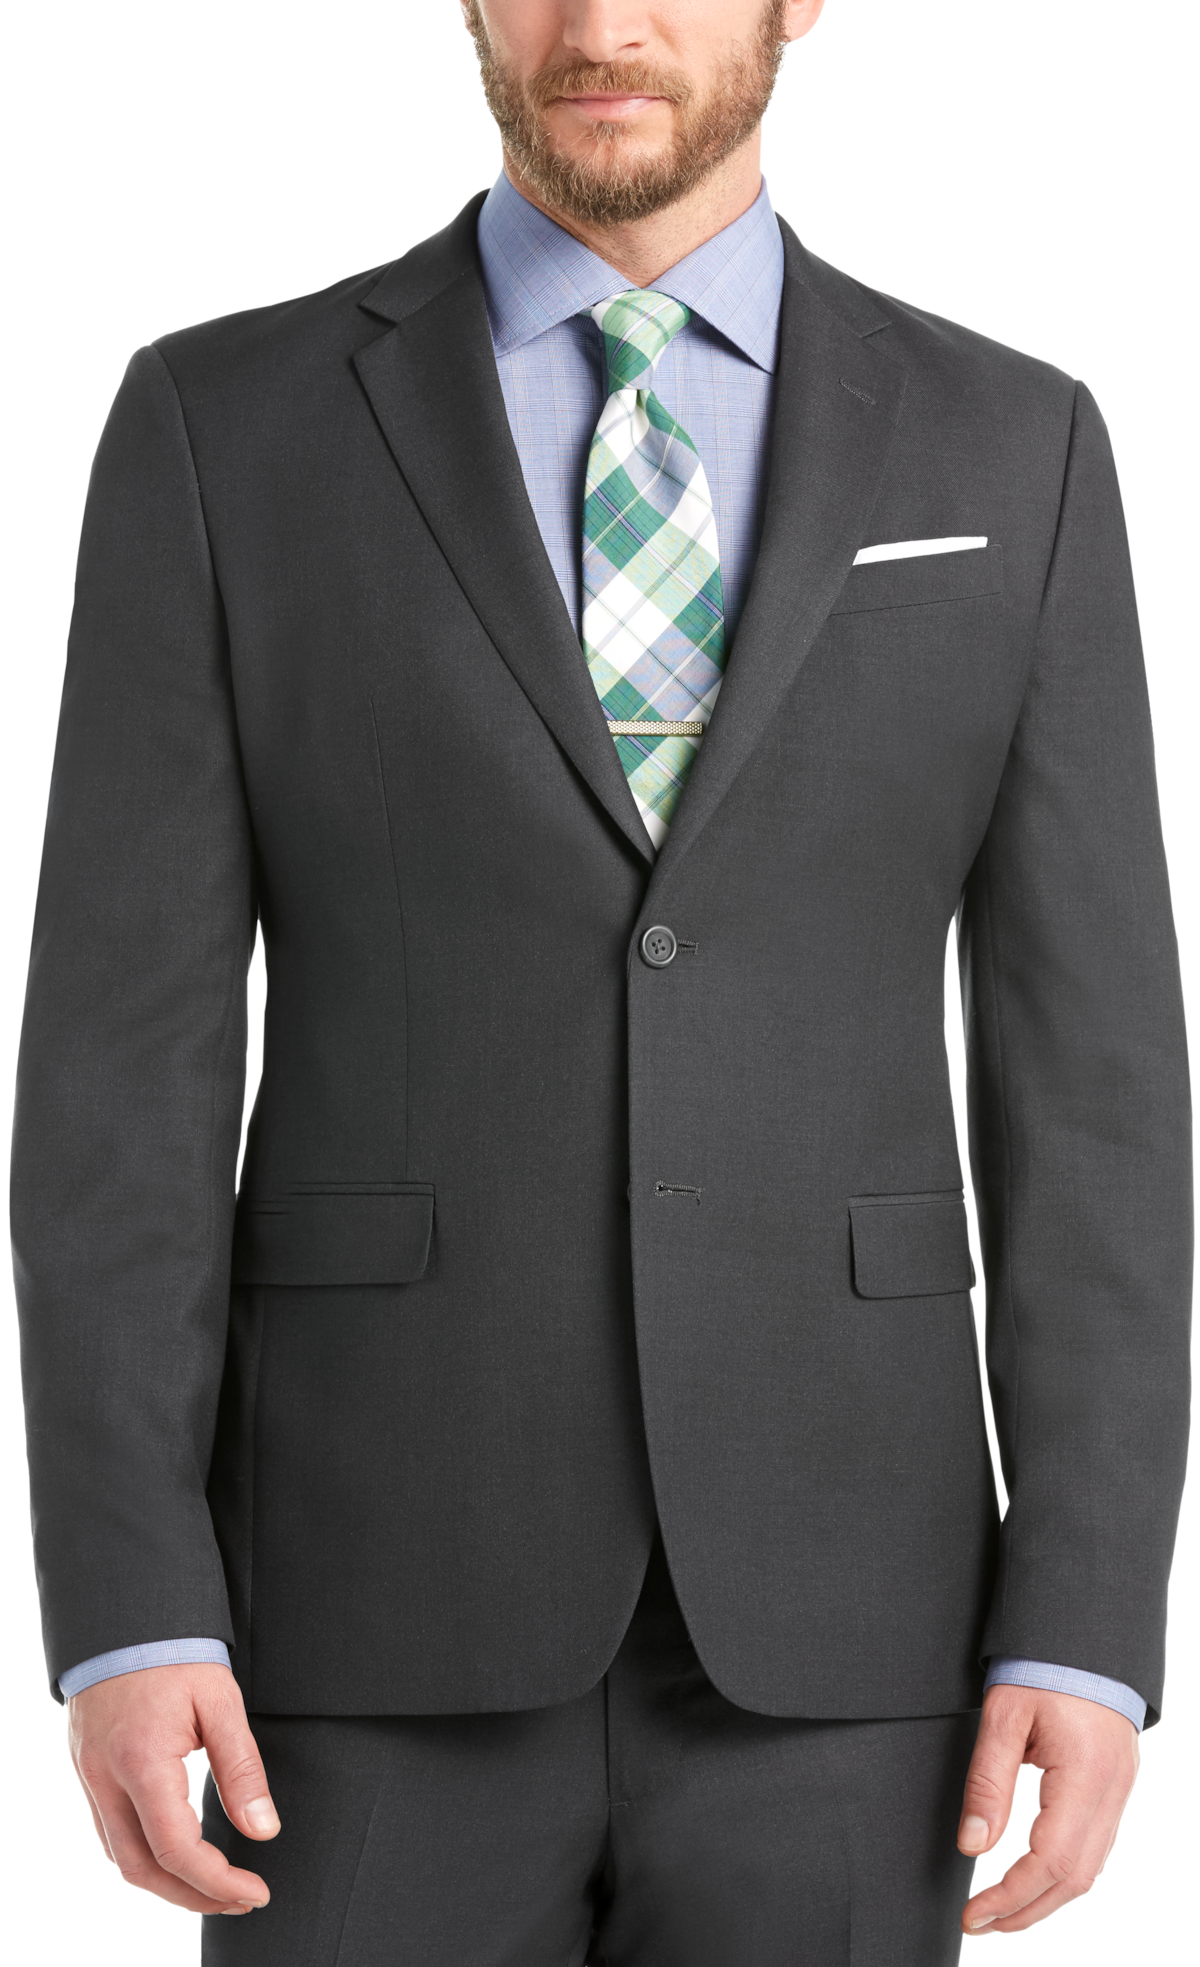 Men S Suits Top Suit Shop Online Men S Wearhouse